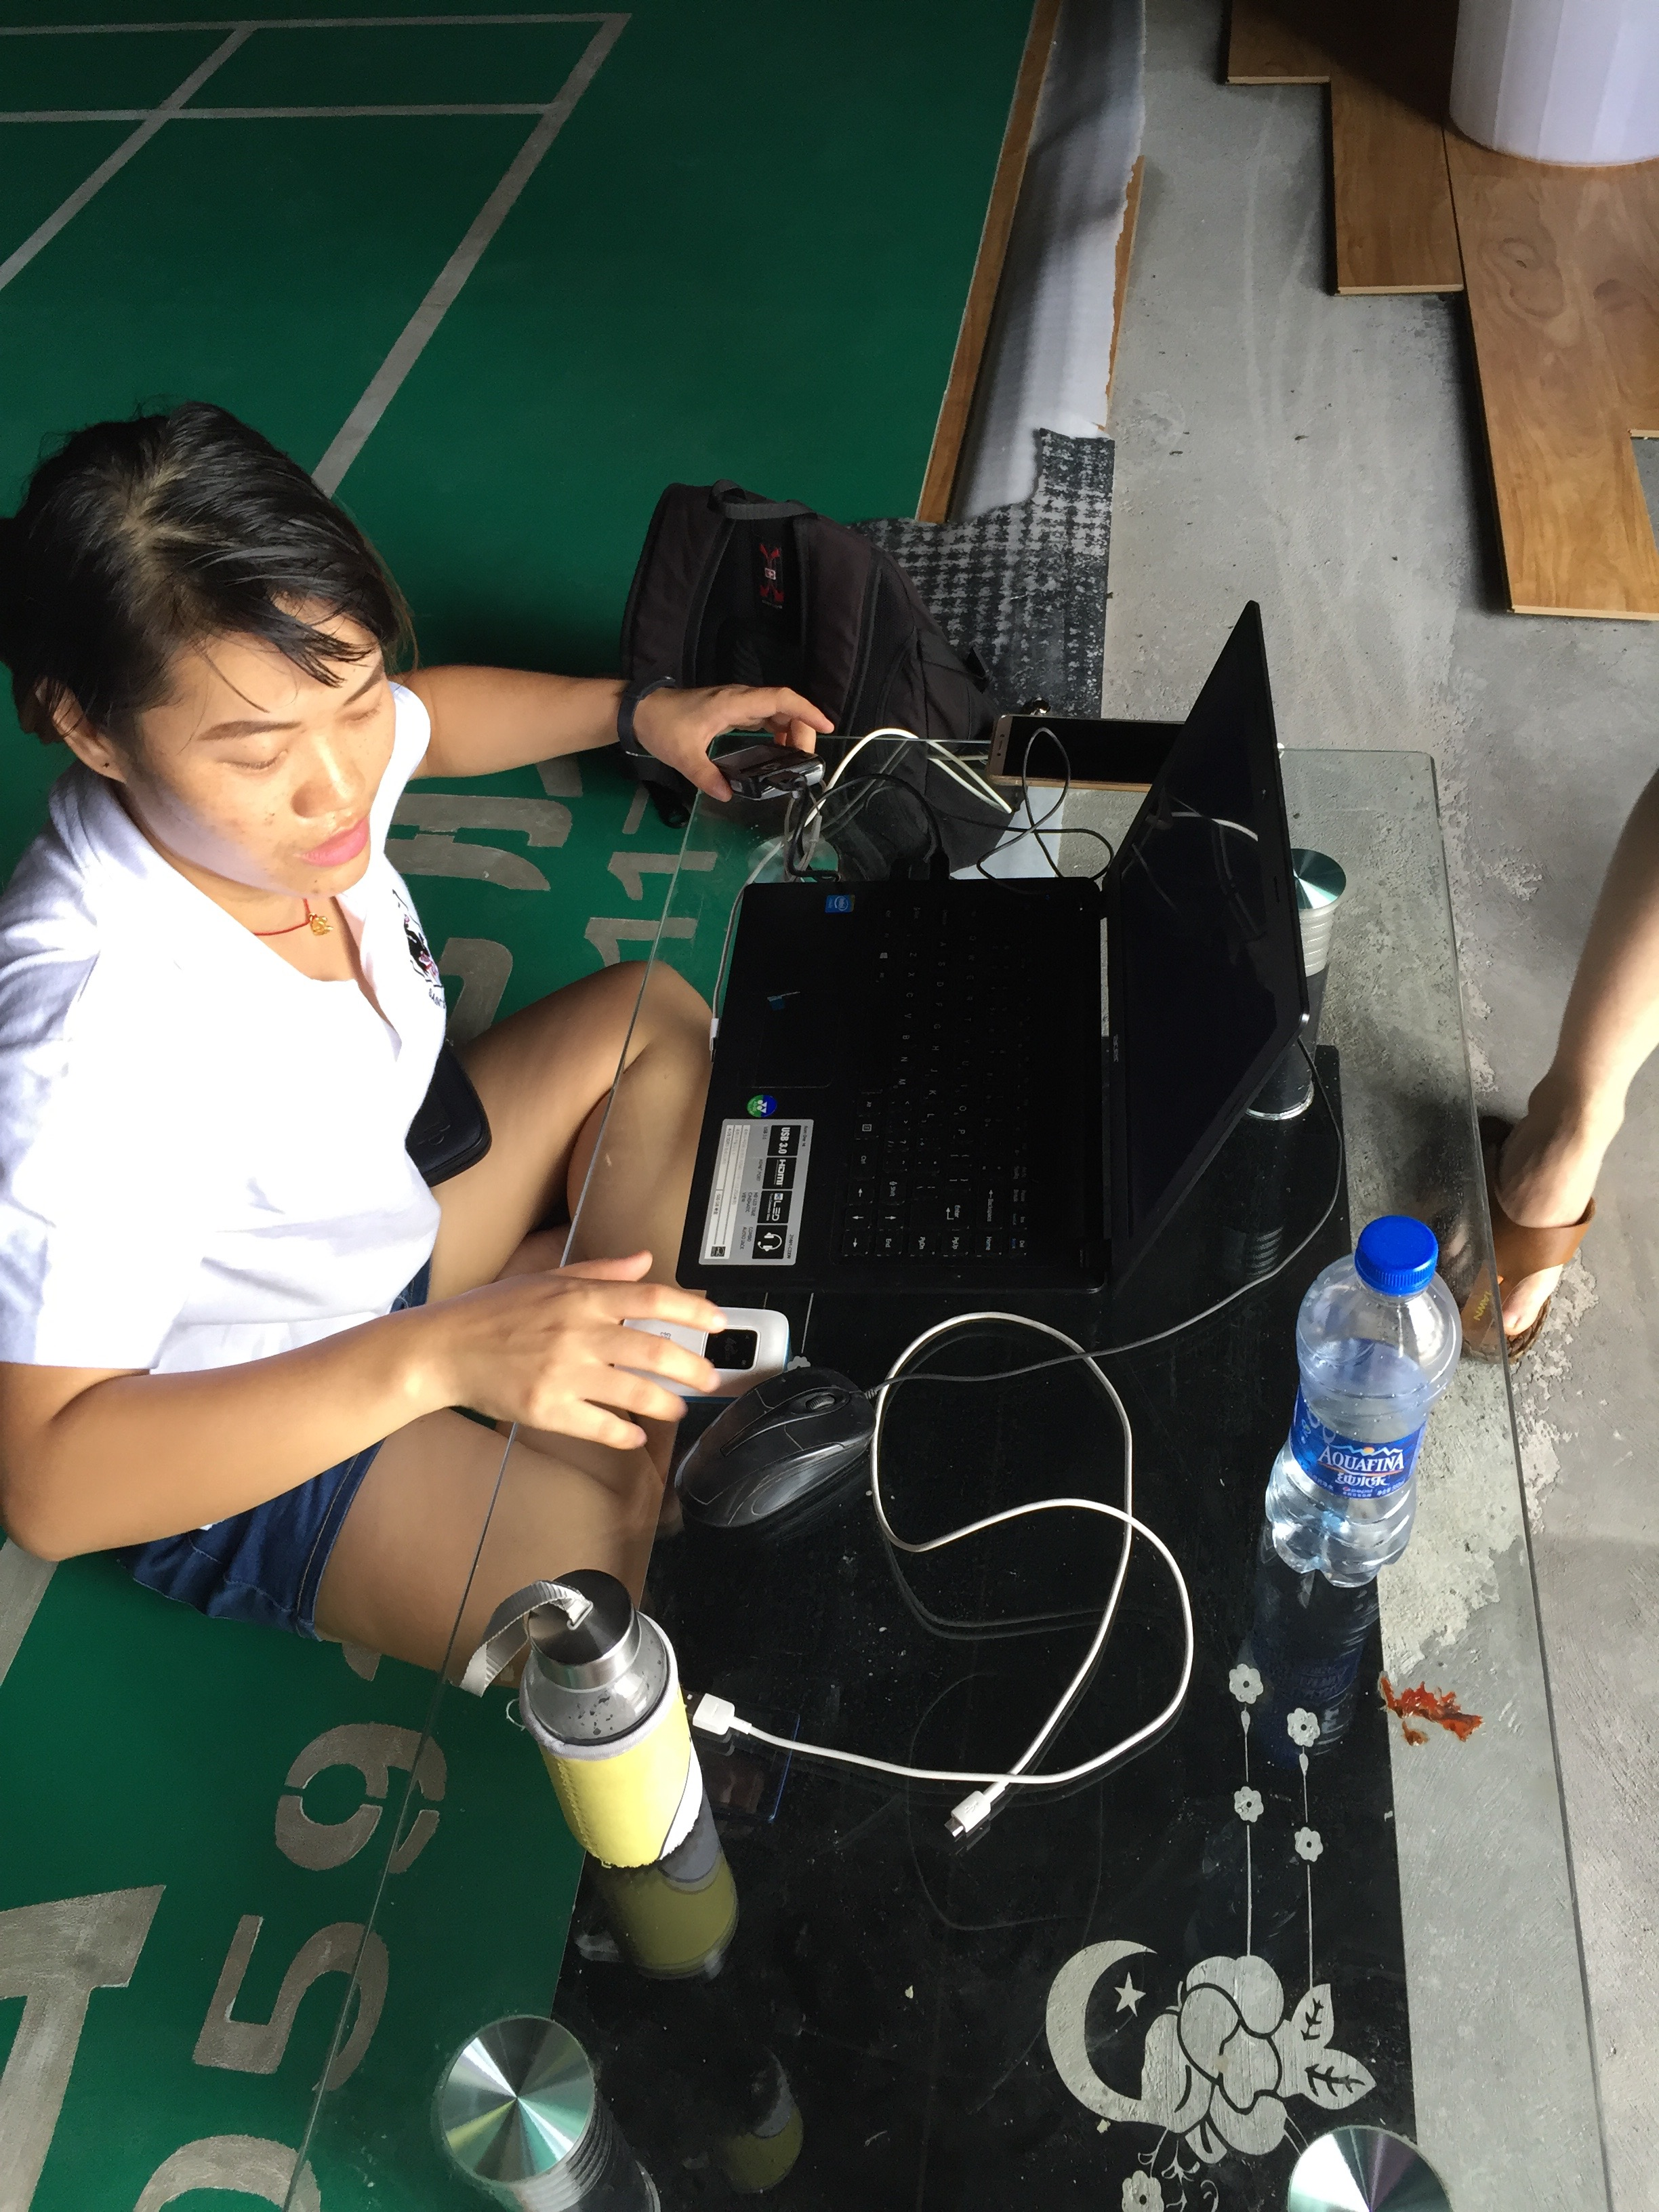 Several people still had no power at home so one dedicated player brought her computer so others could get some juice off it.